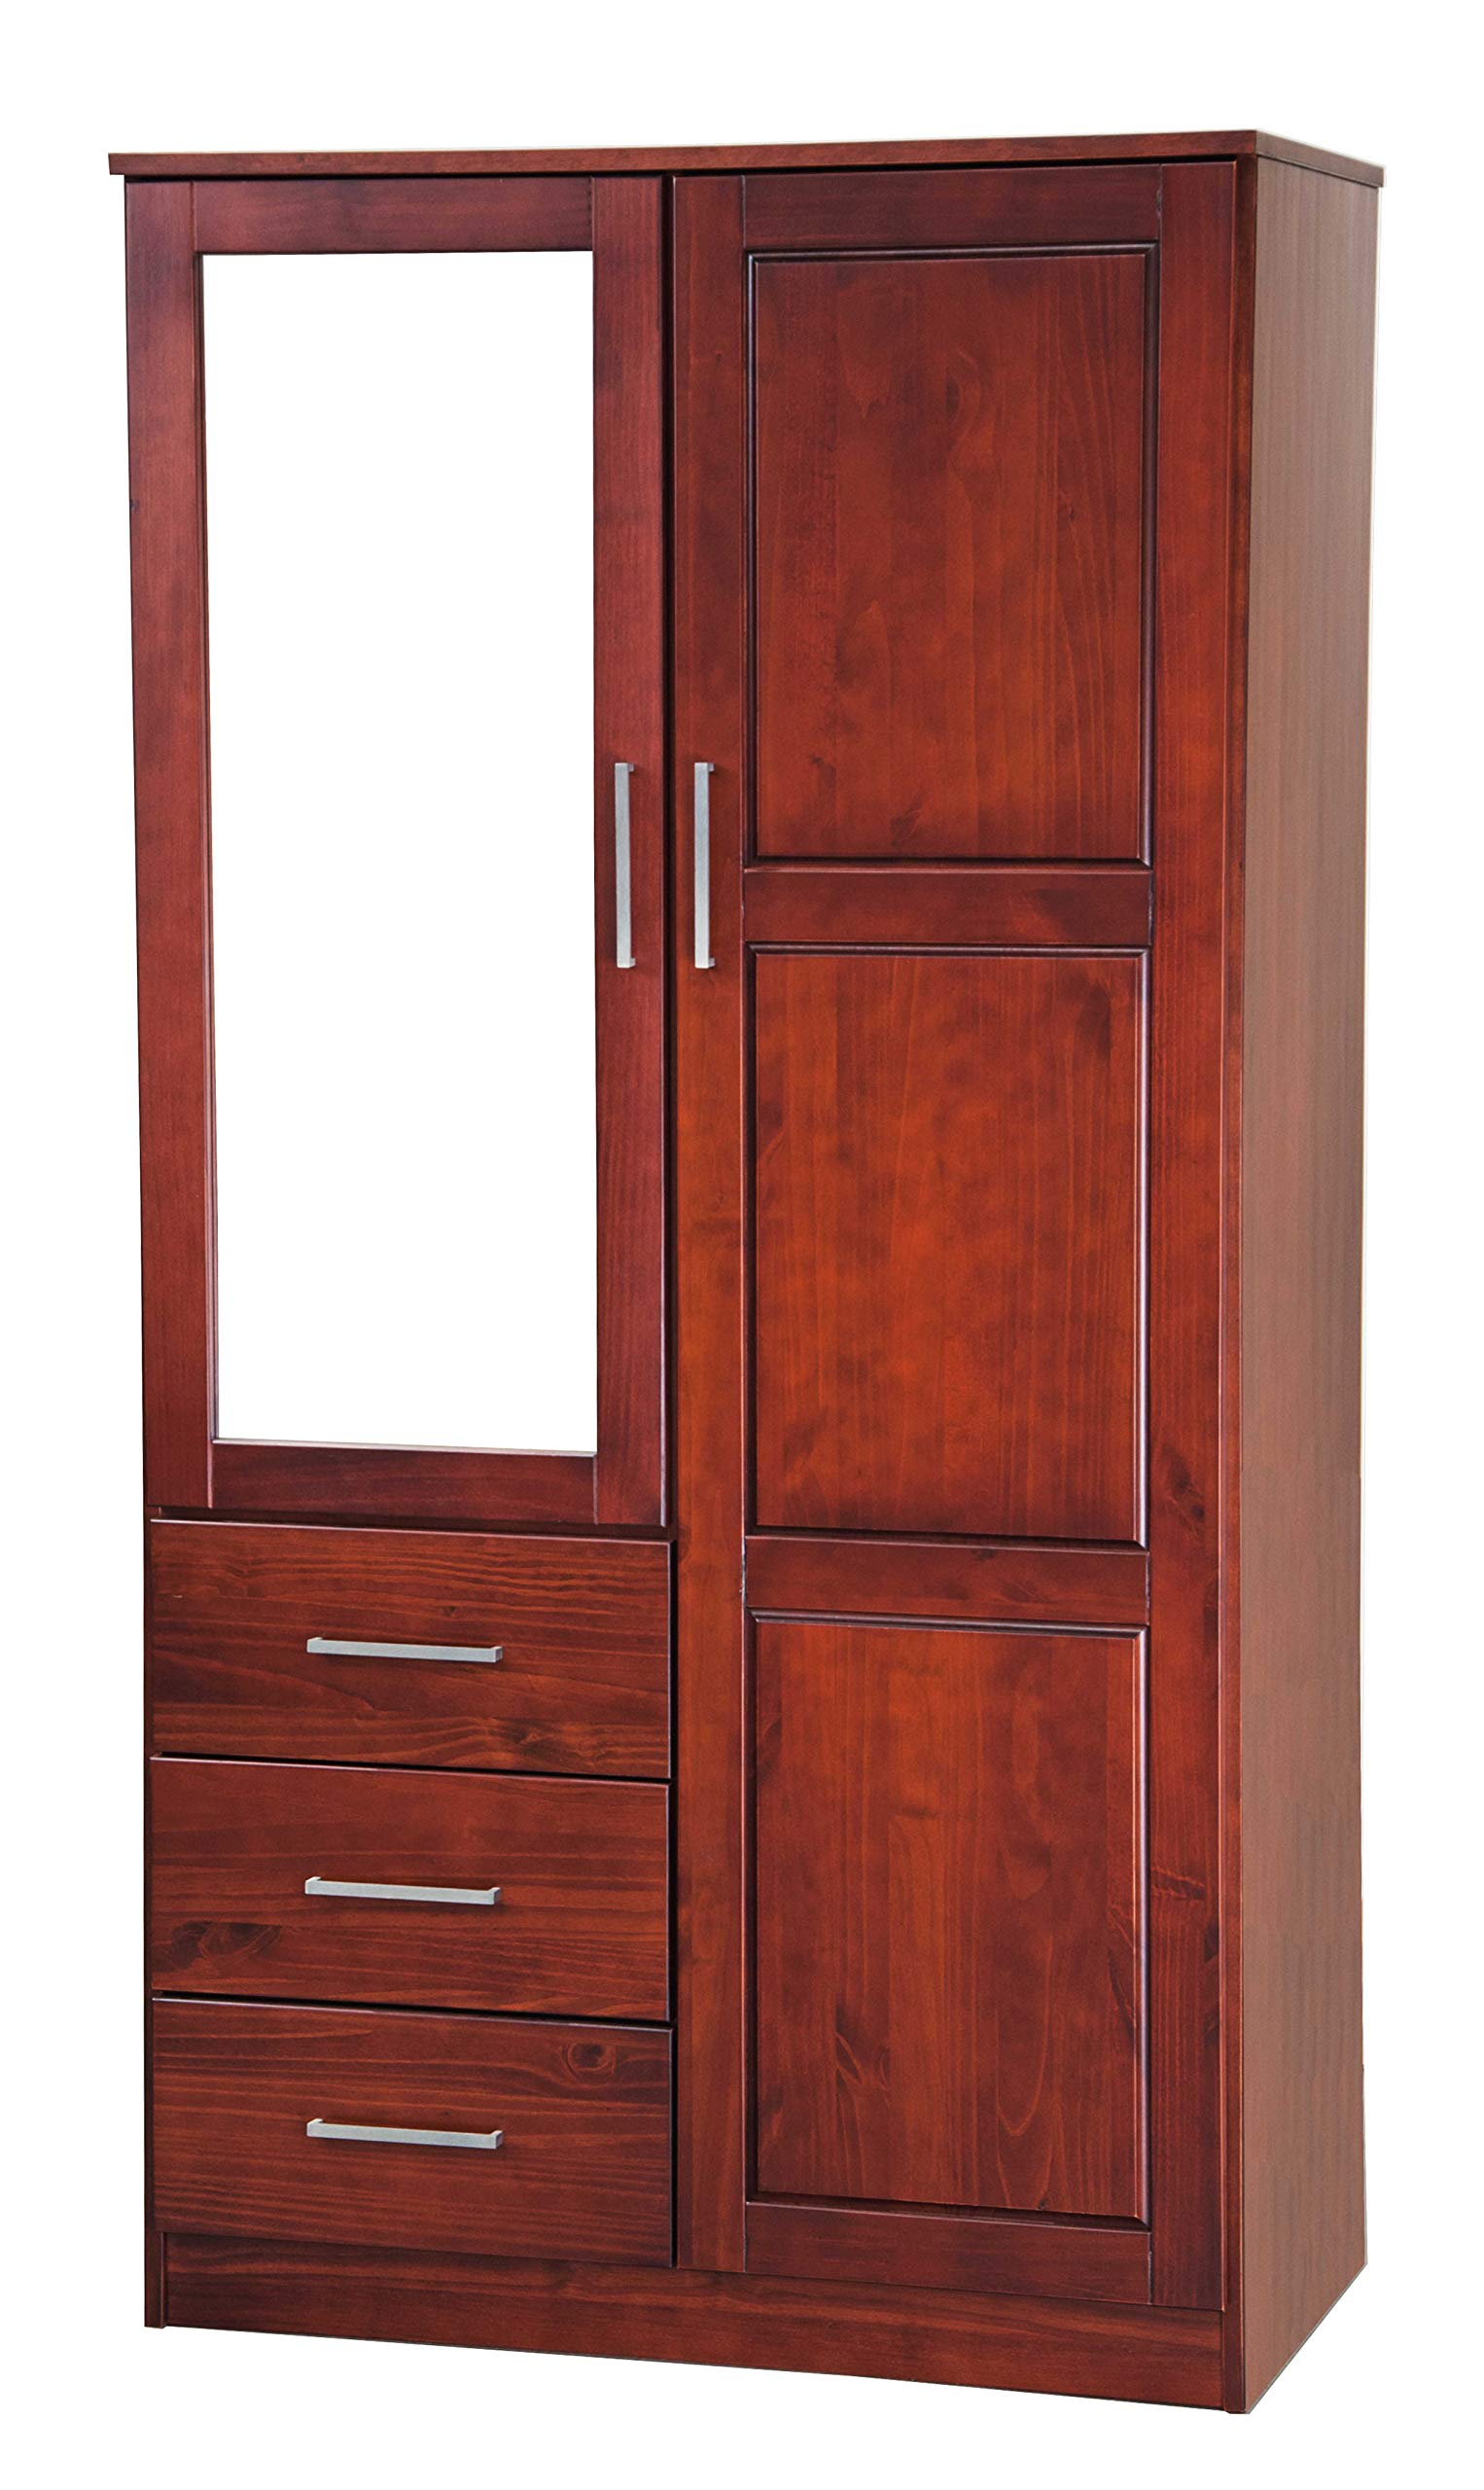 Metro Solid Pine Wood Wardrobe/Armoire/Closet with Mirror and 3 Drawers 7102 Mahogany by Palace Imports, 38''w x 21''d x 72''h. Optional Additional Shelves Sold Separately. Requires Assembly. by Palace Imports